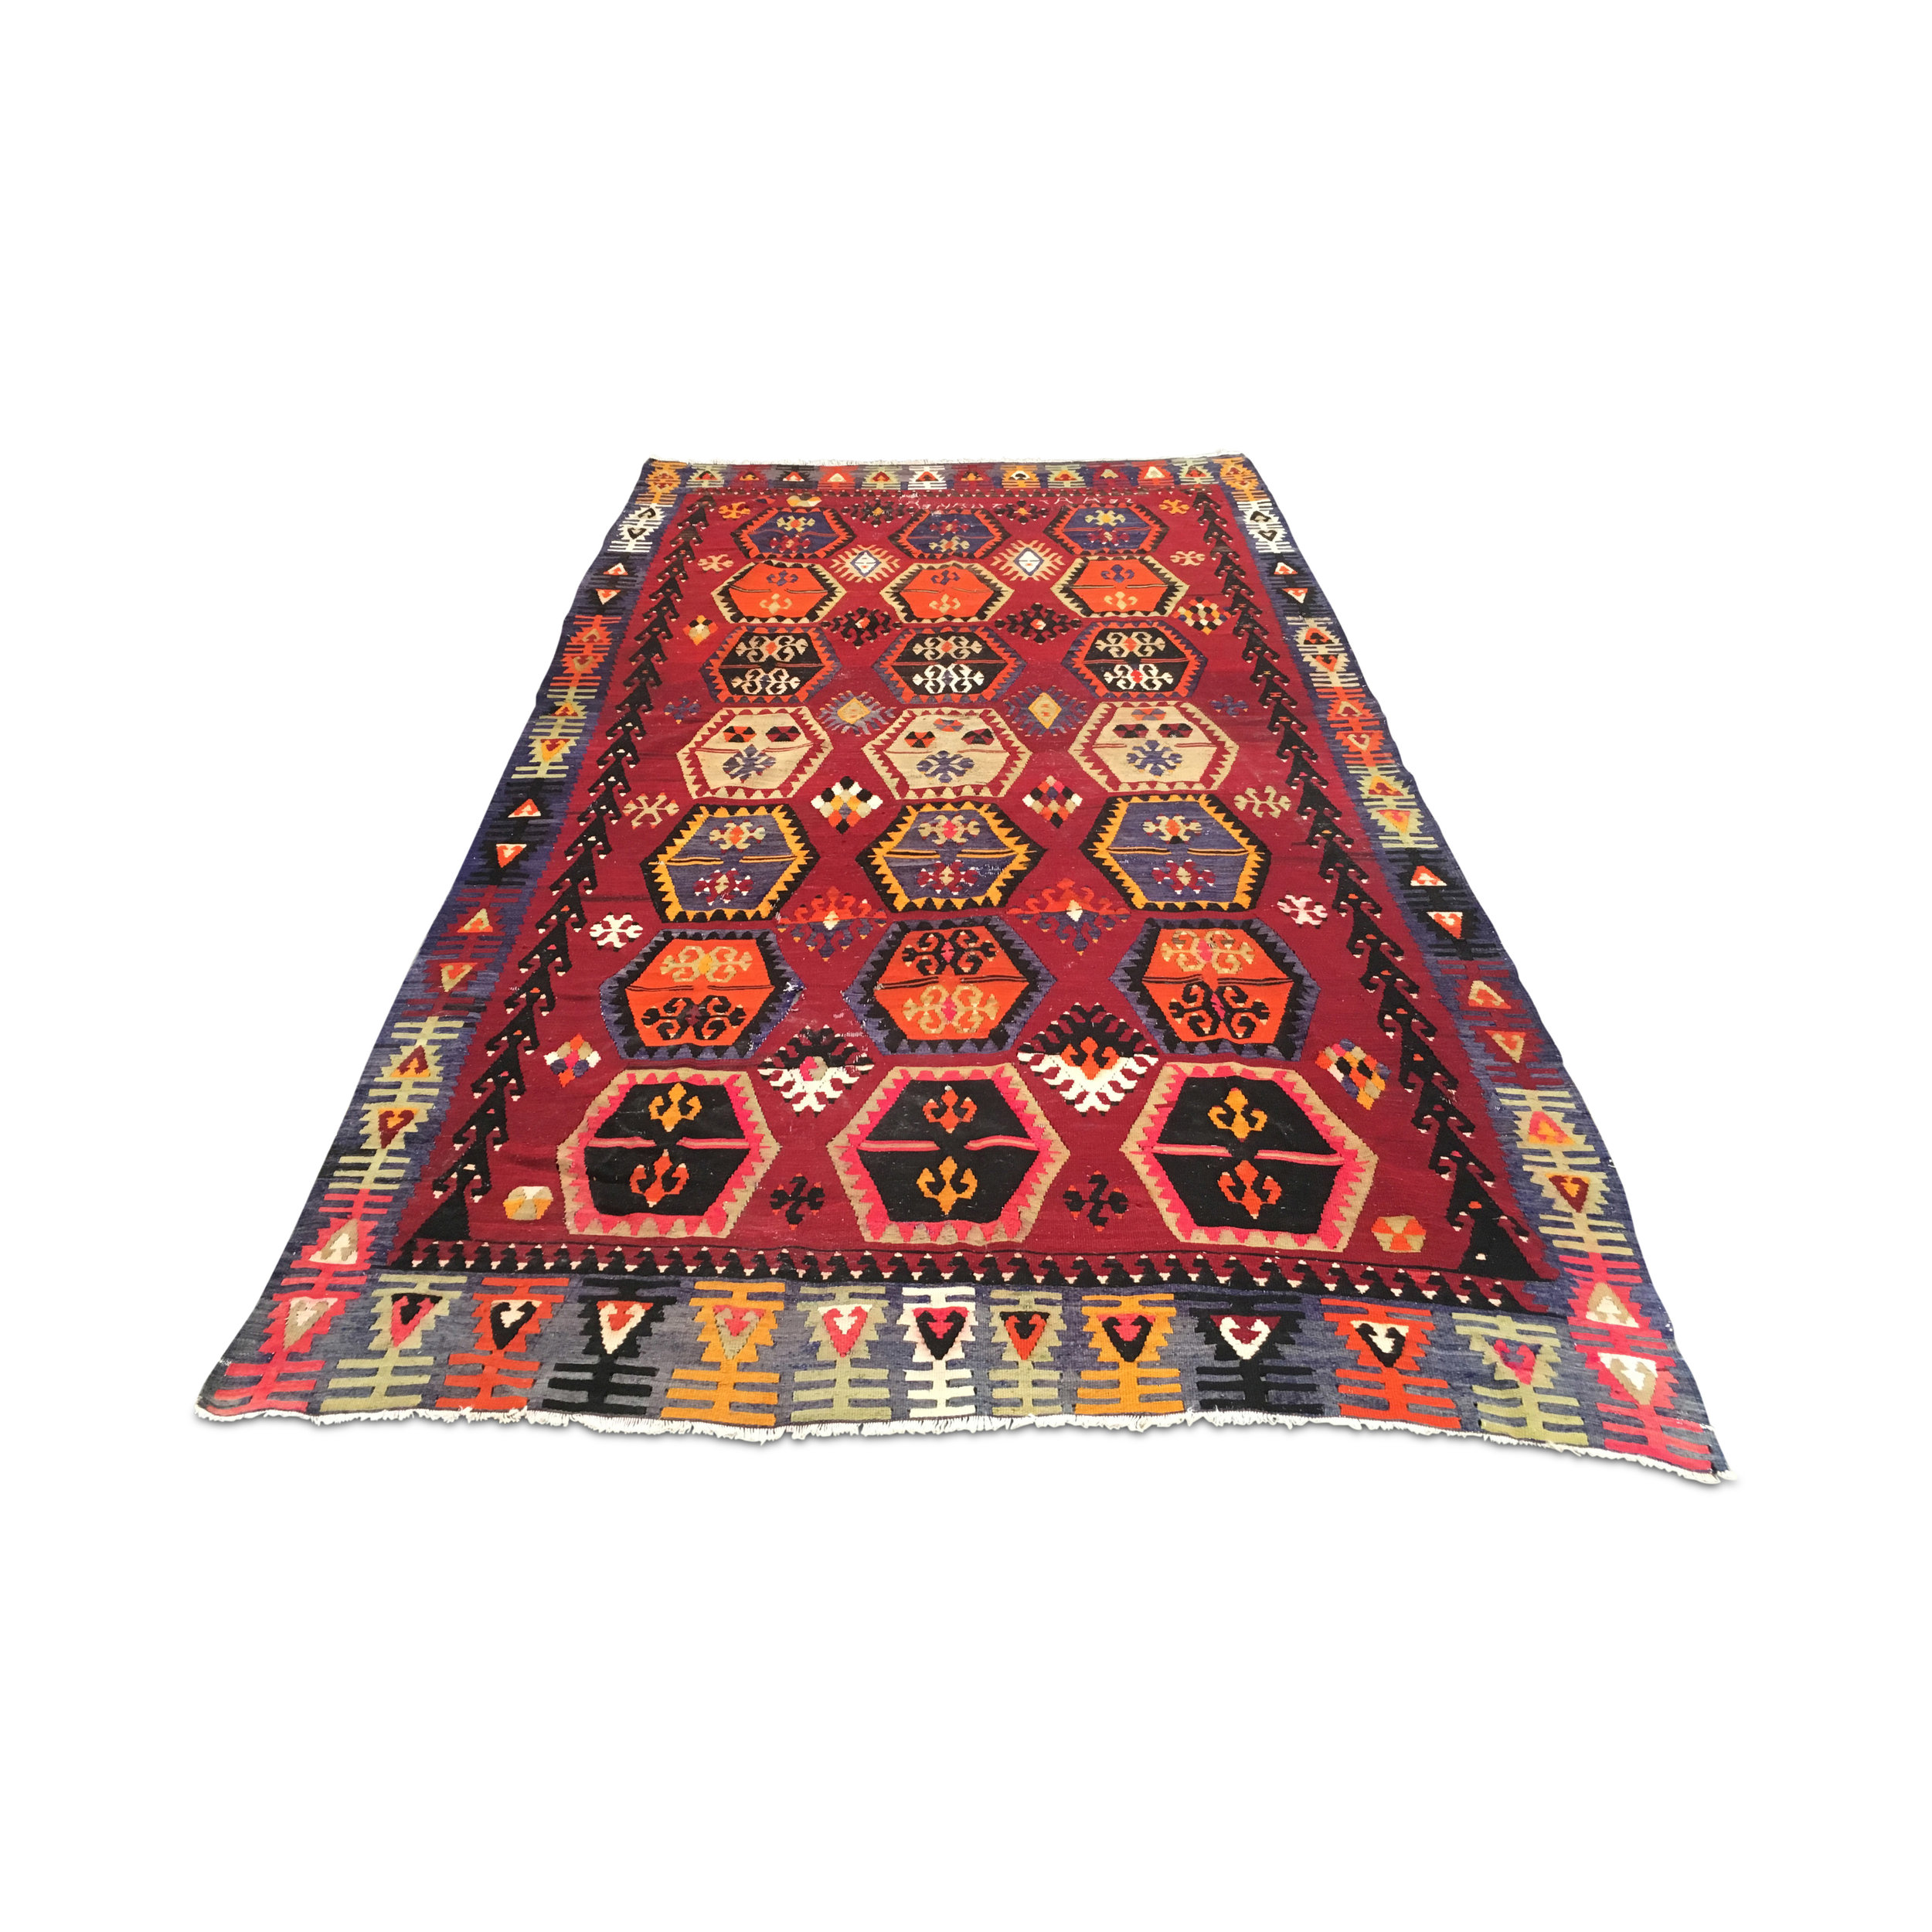 Turkish Kilim Rug    -